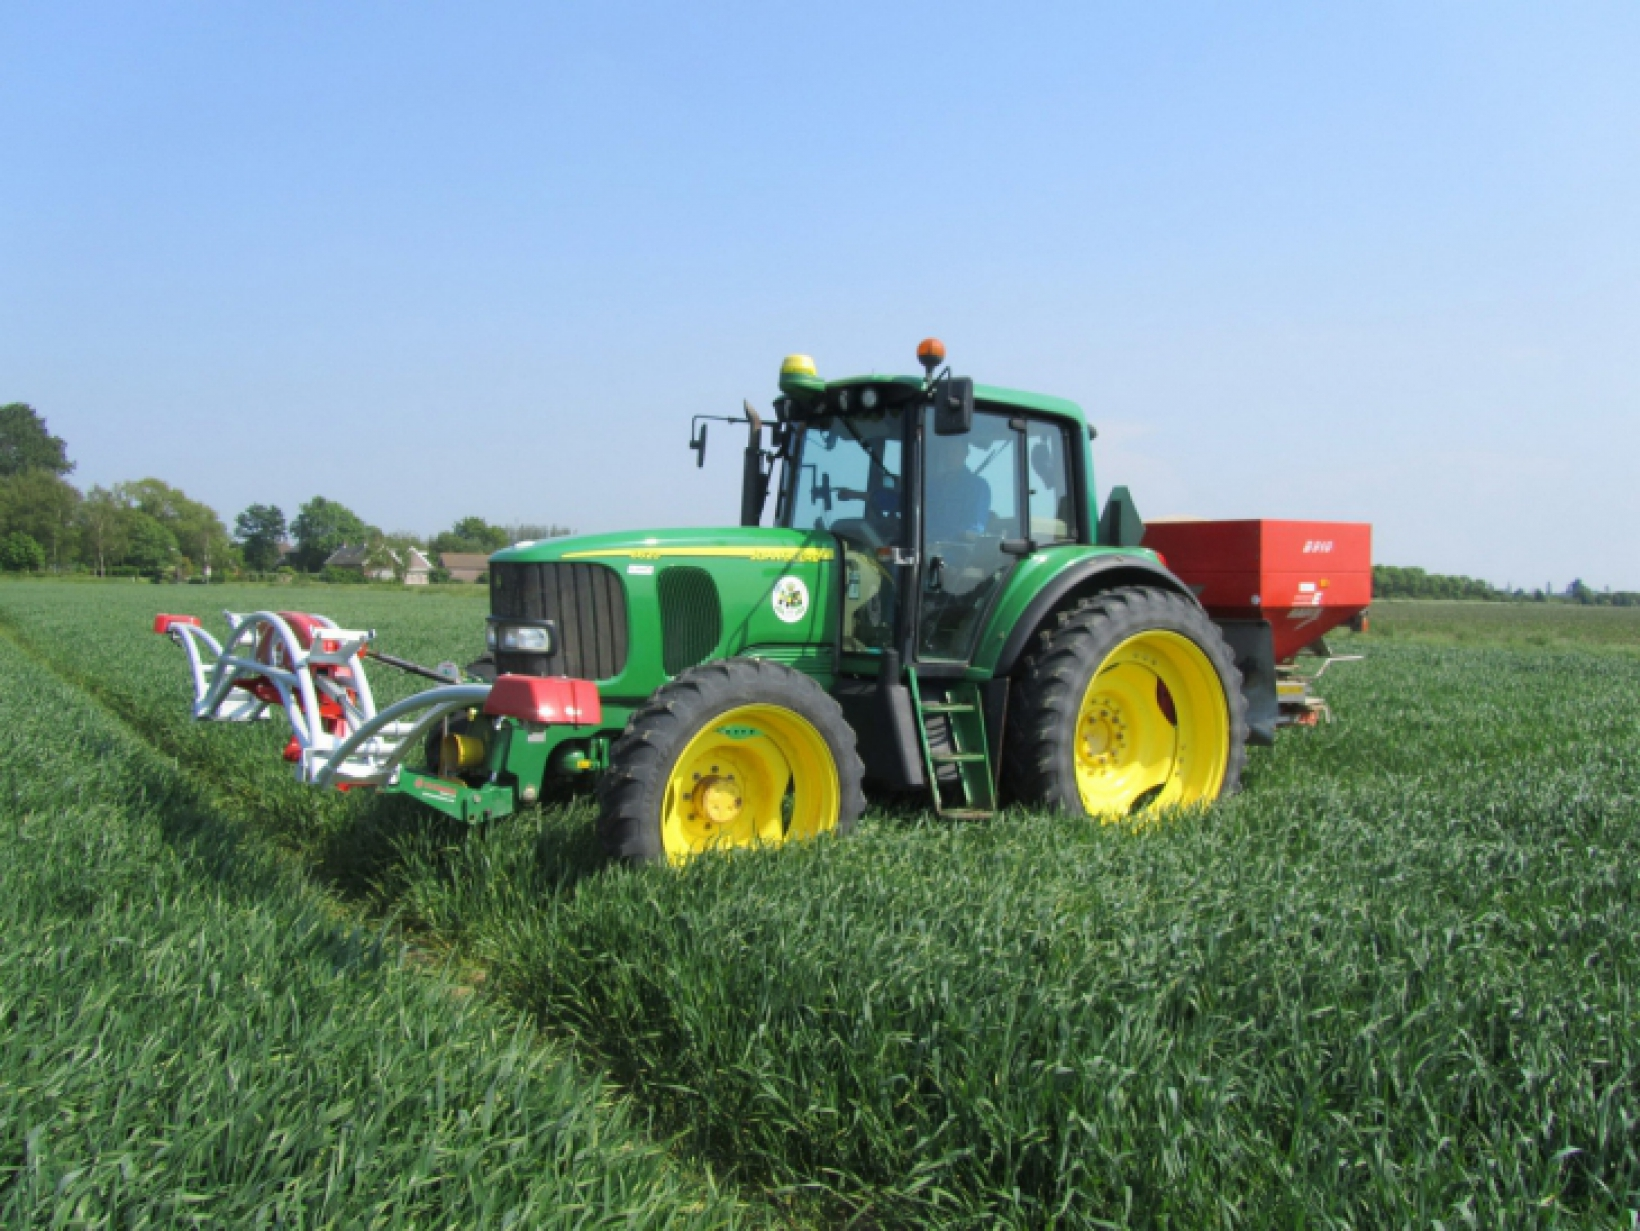 Precision farming becoming more and more important in modern agriculture